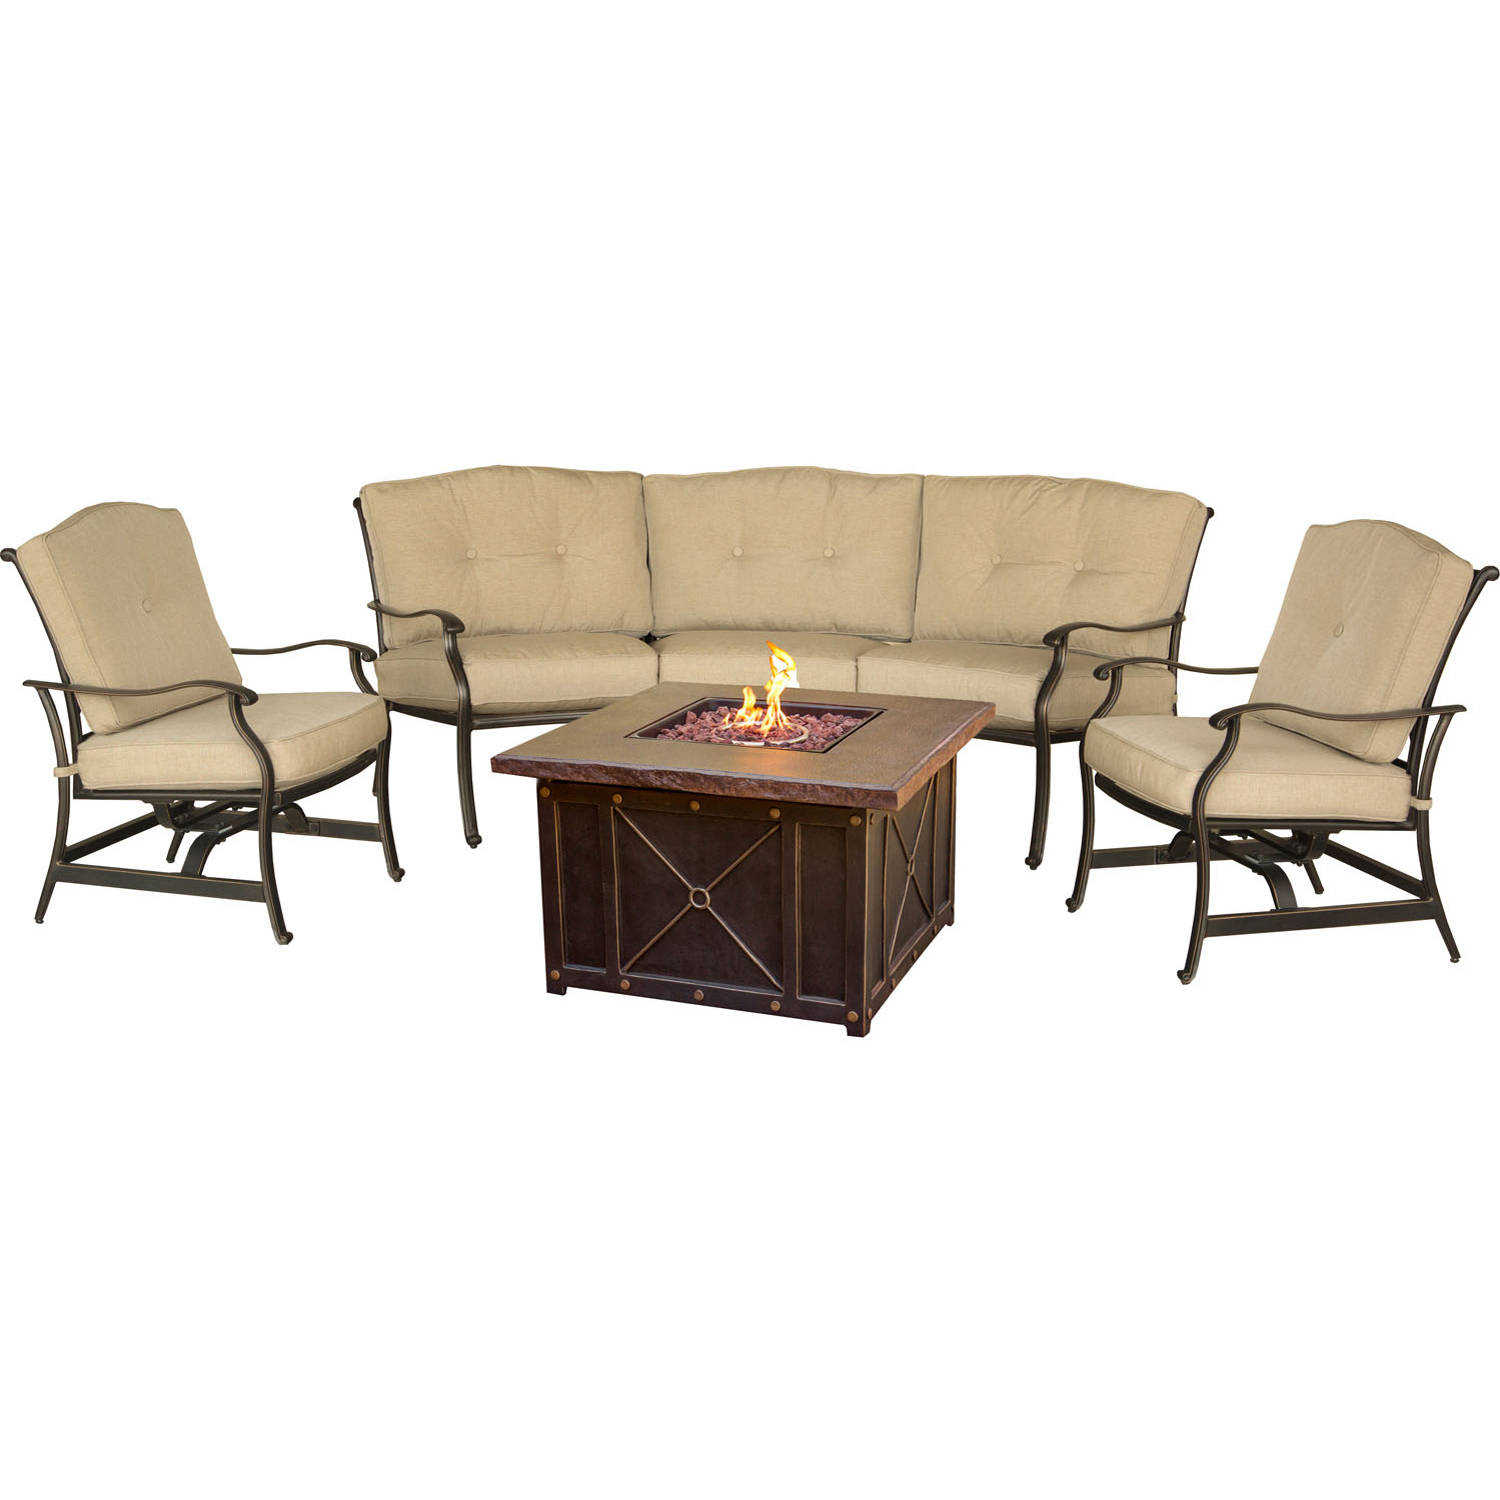 Hanover Outdoor Traditions 4-Piece DuraStone Firepit Lounge Set, Natural Oat Bronze by Hanover Outdoor